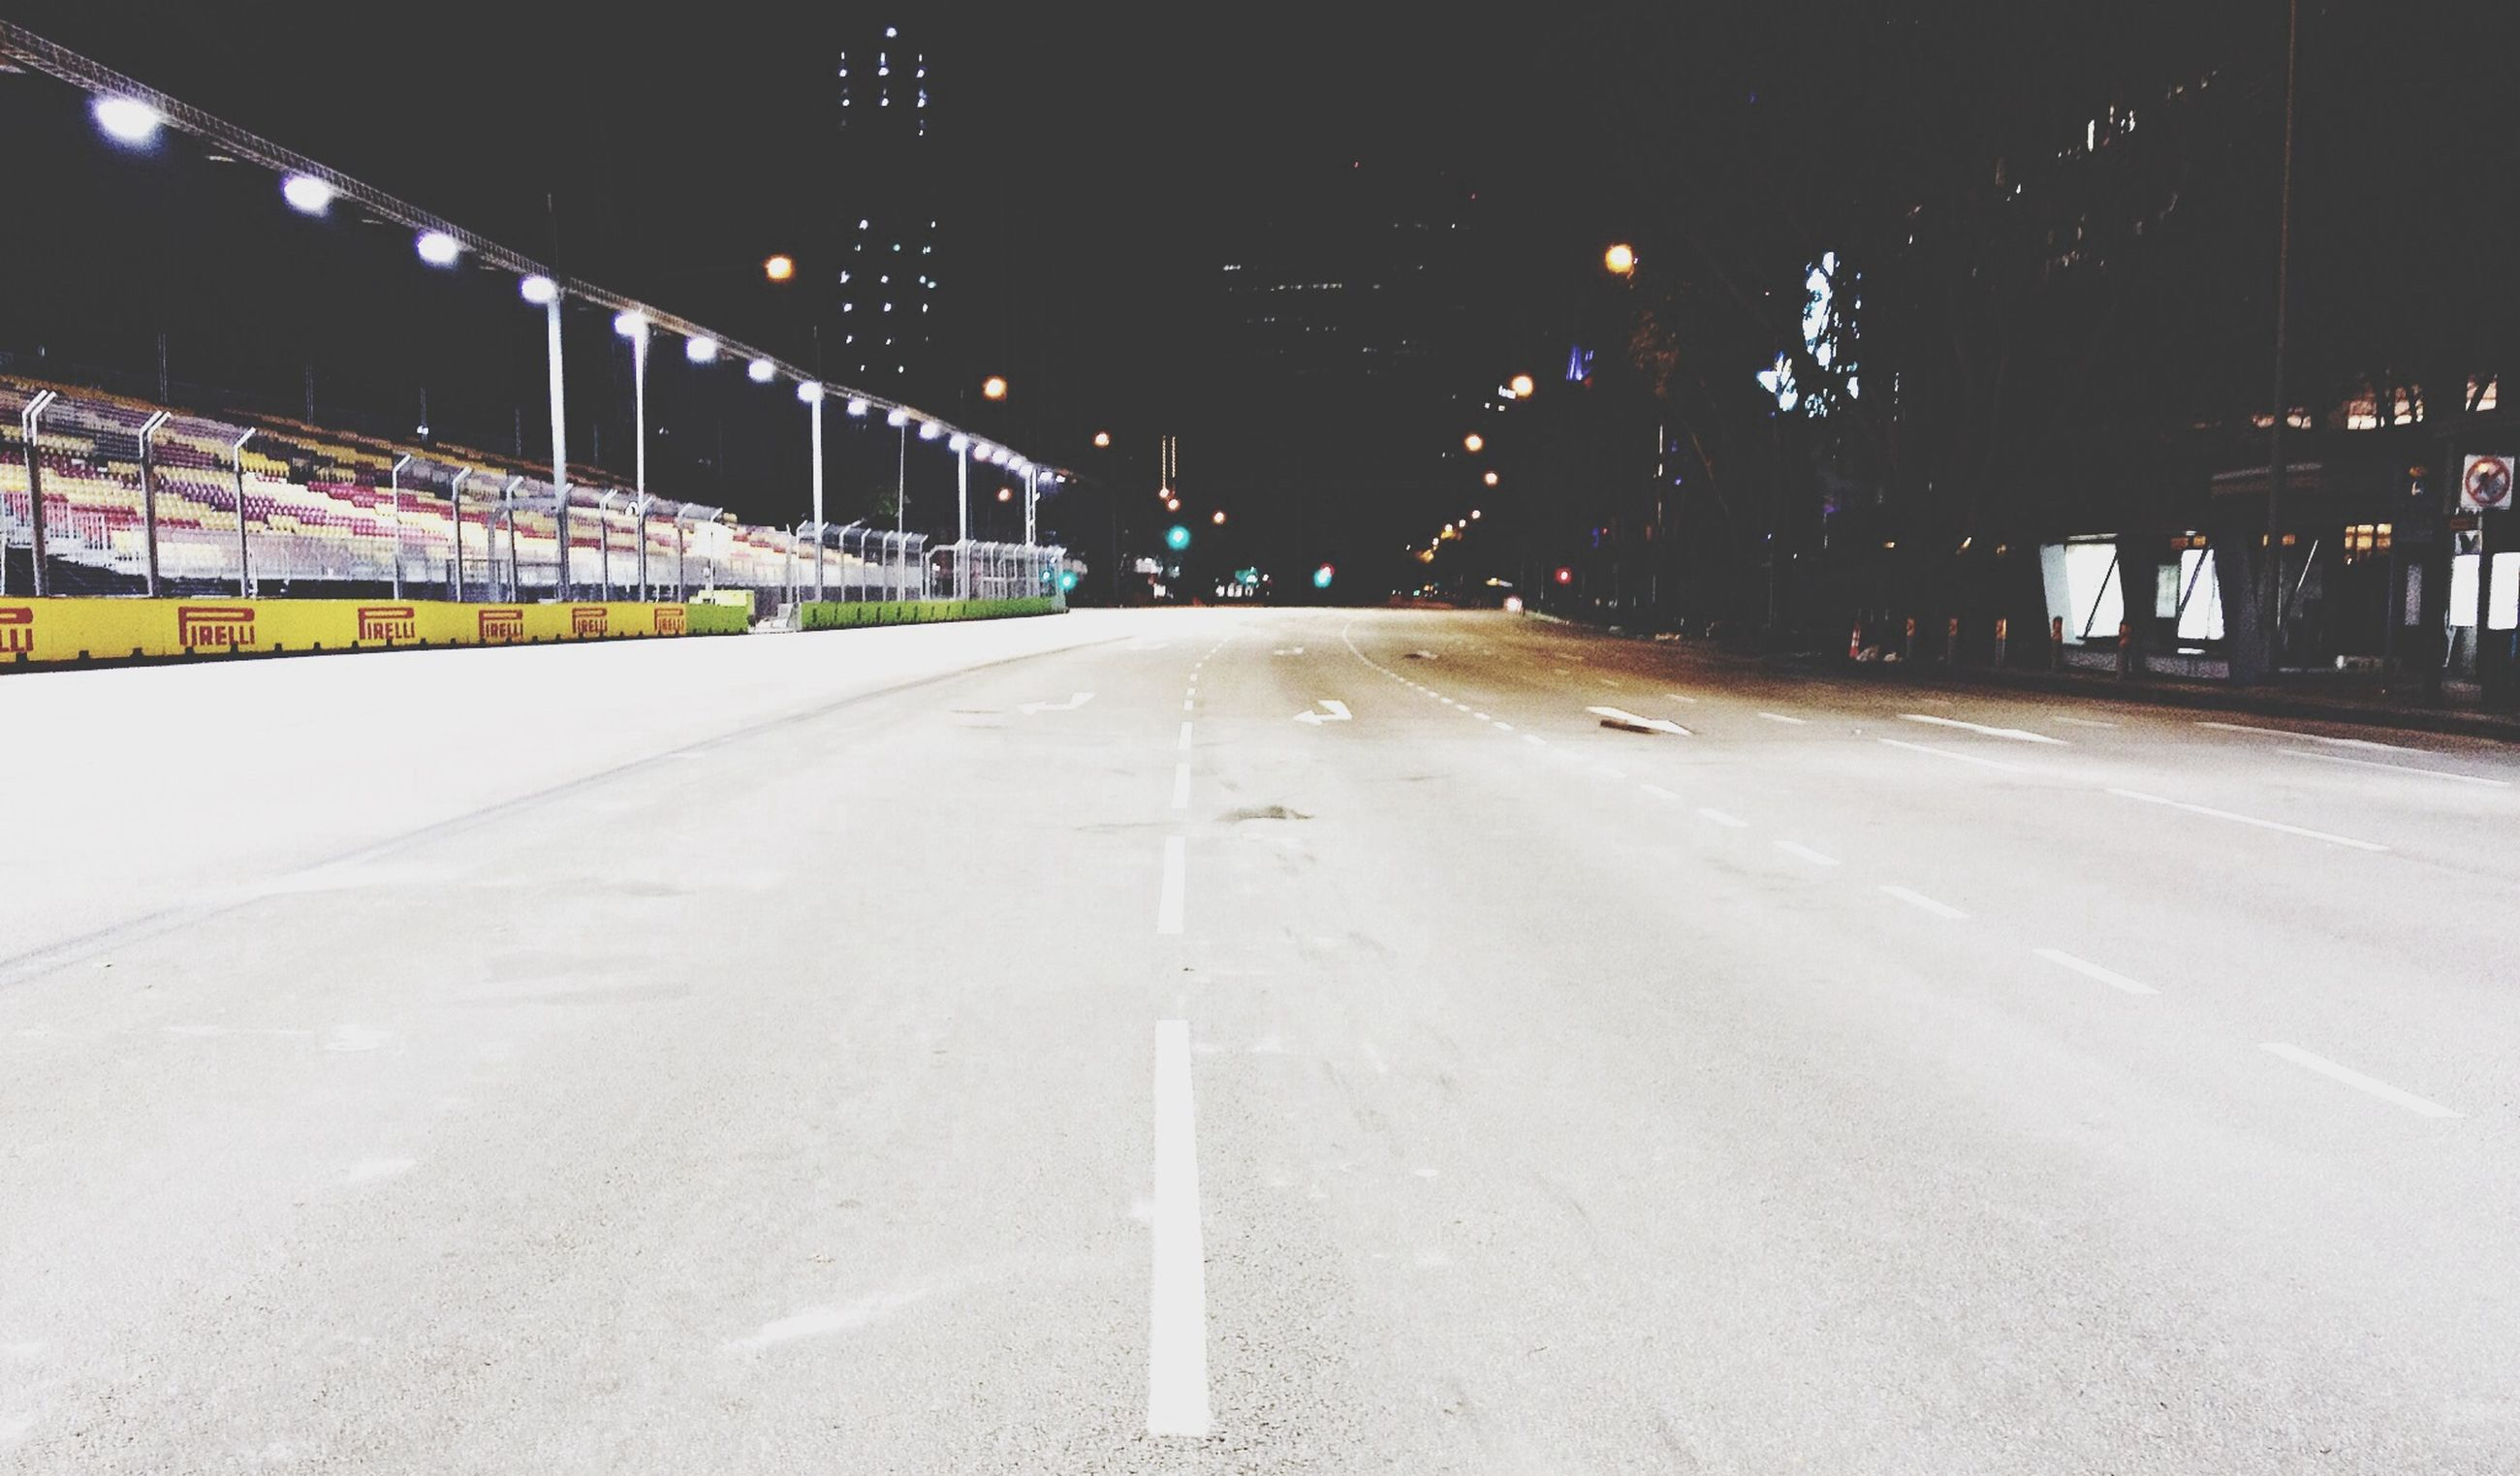 night, the way forward, illuminated, transportation, diminishing perspective, vanishing point, road, snow, street light, winter, empty, road marking, cold temperature, street, long, lighting equipment, empty road, outdoors, weather, built structure